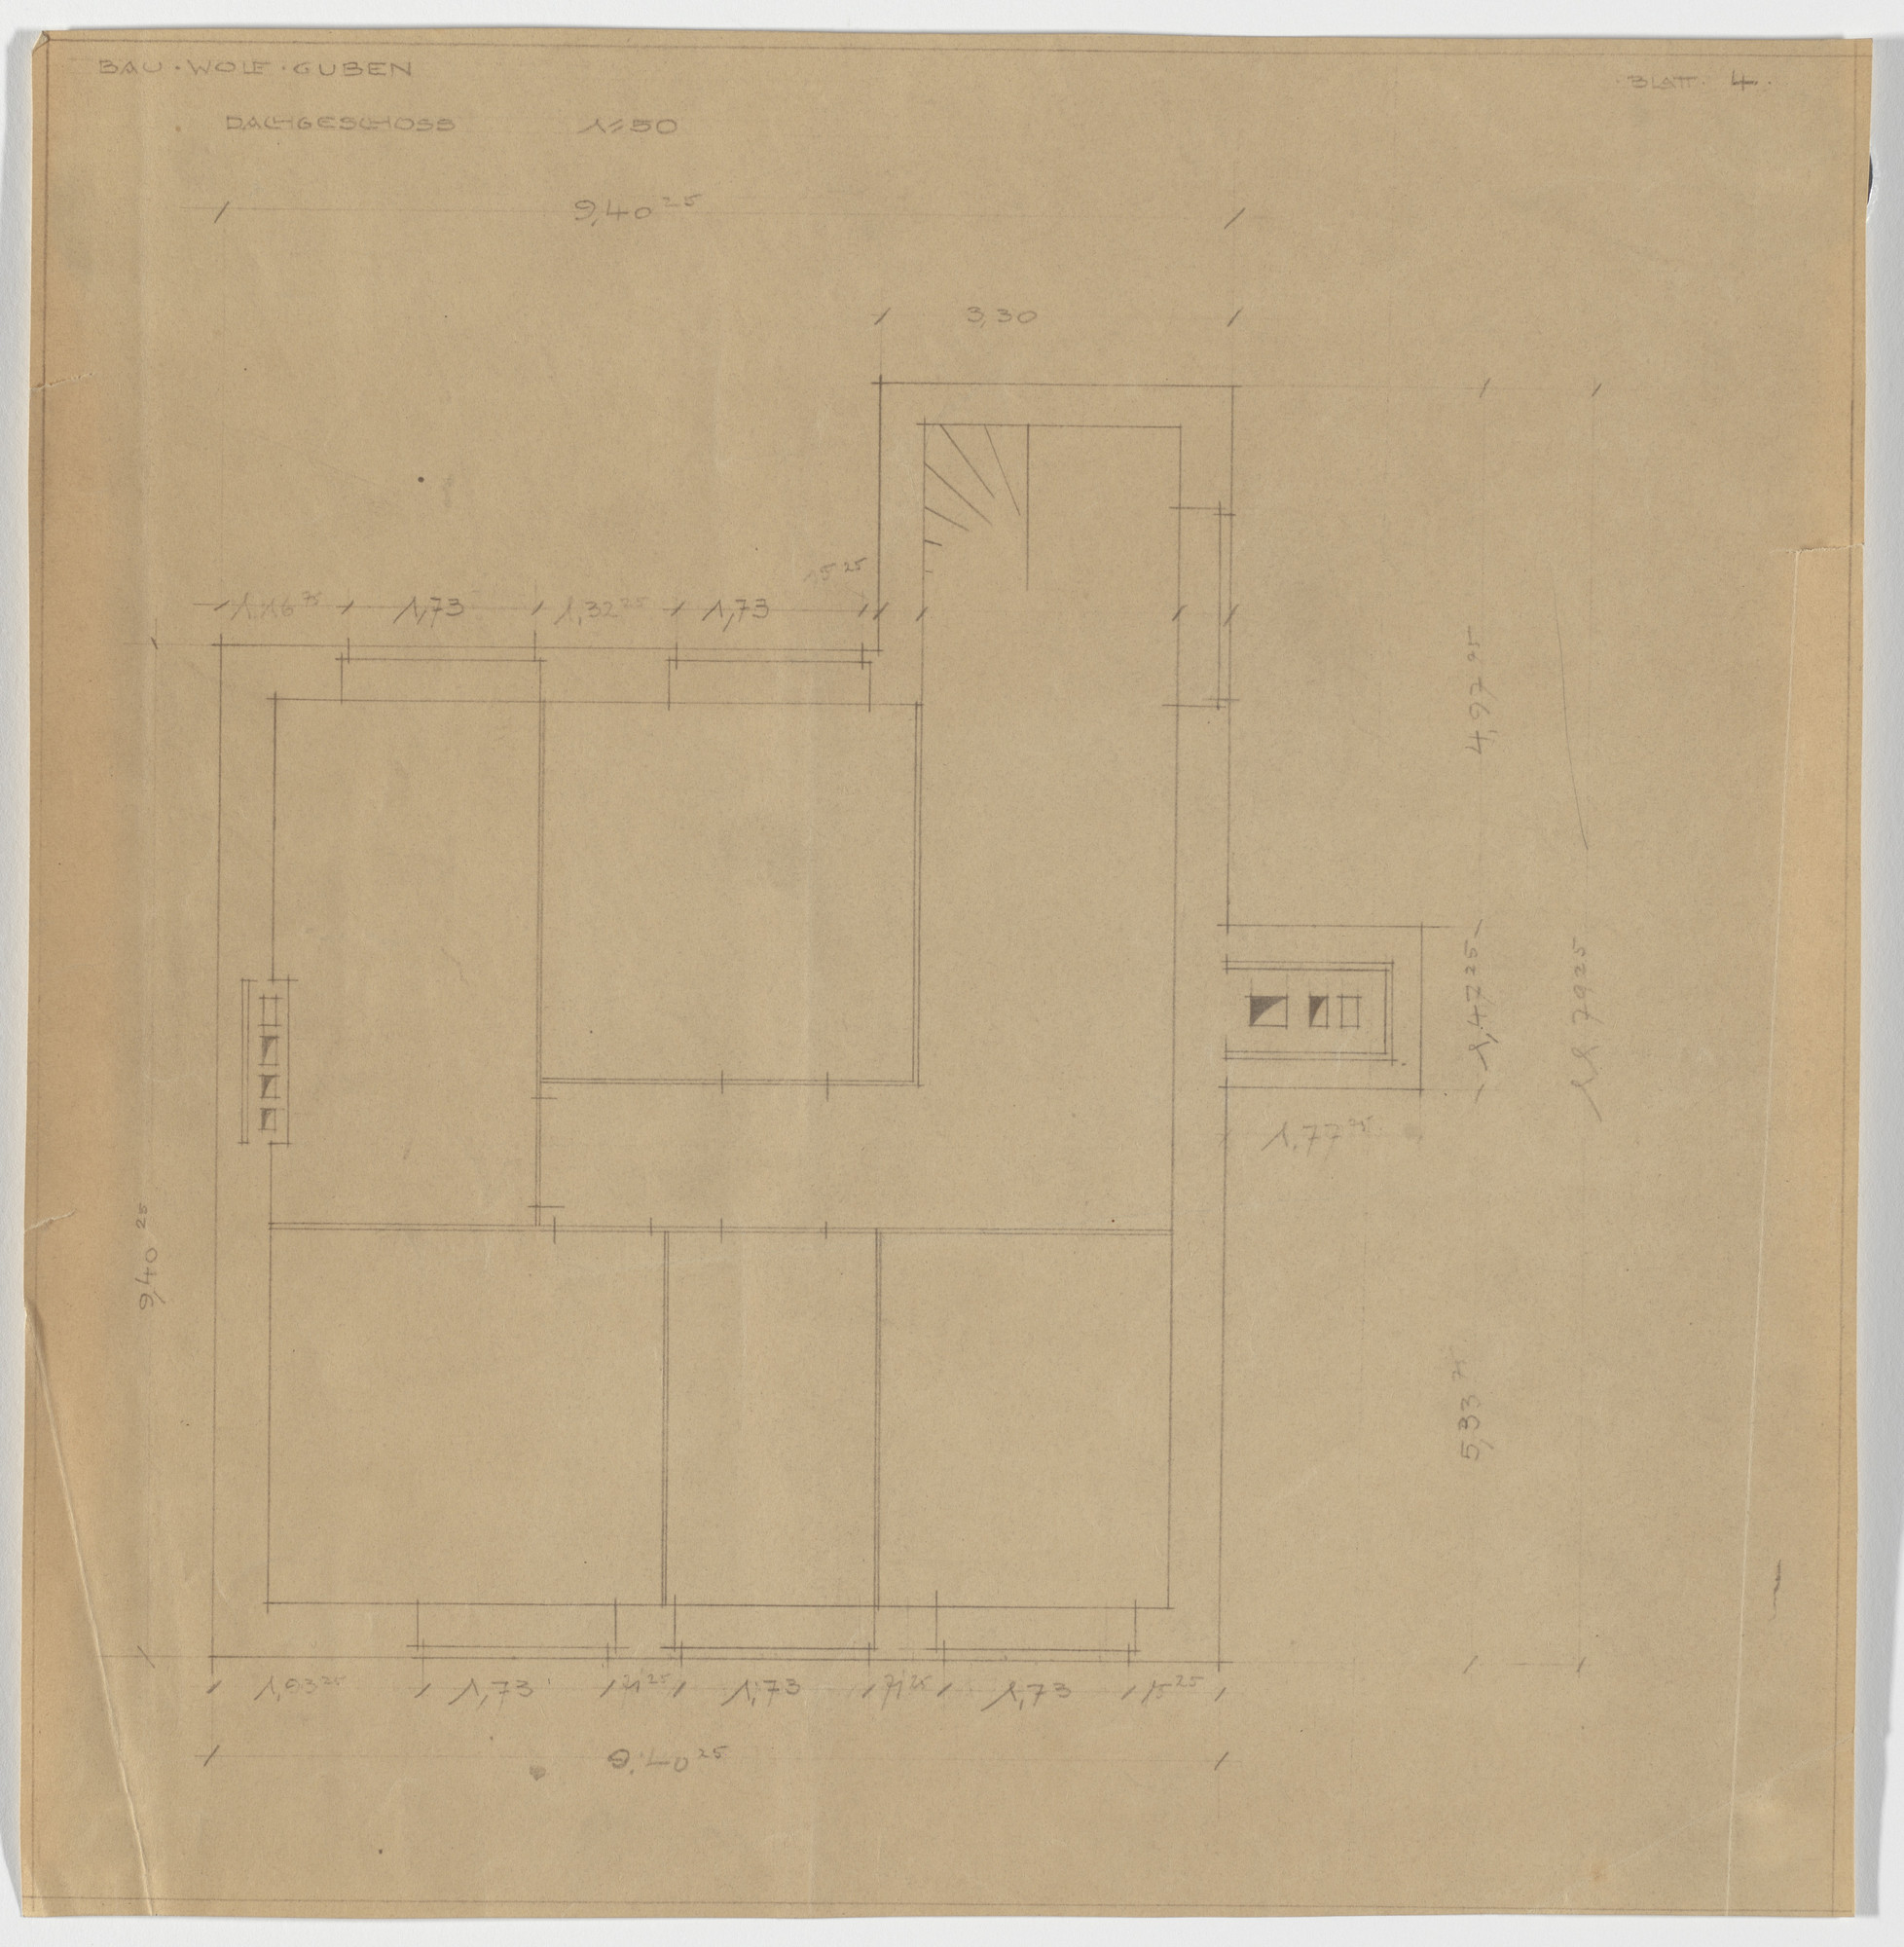 Ludwig Mies van der Rohe. Wolf House, Gubin, Poland (Third floor plan [final version]). 1925-1927